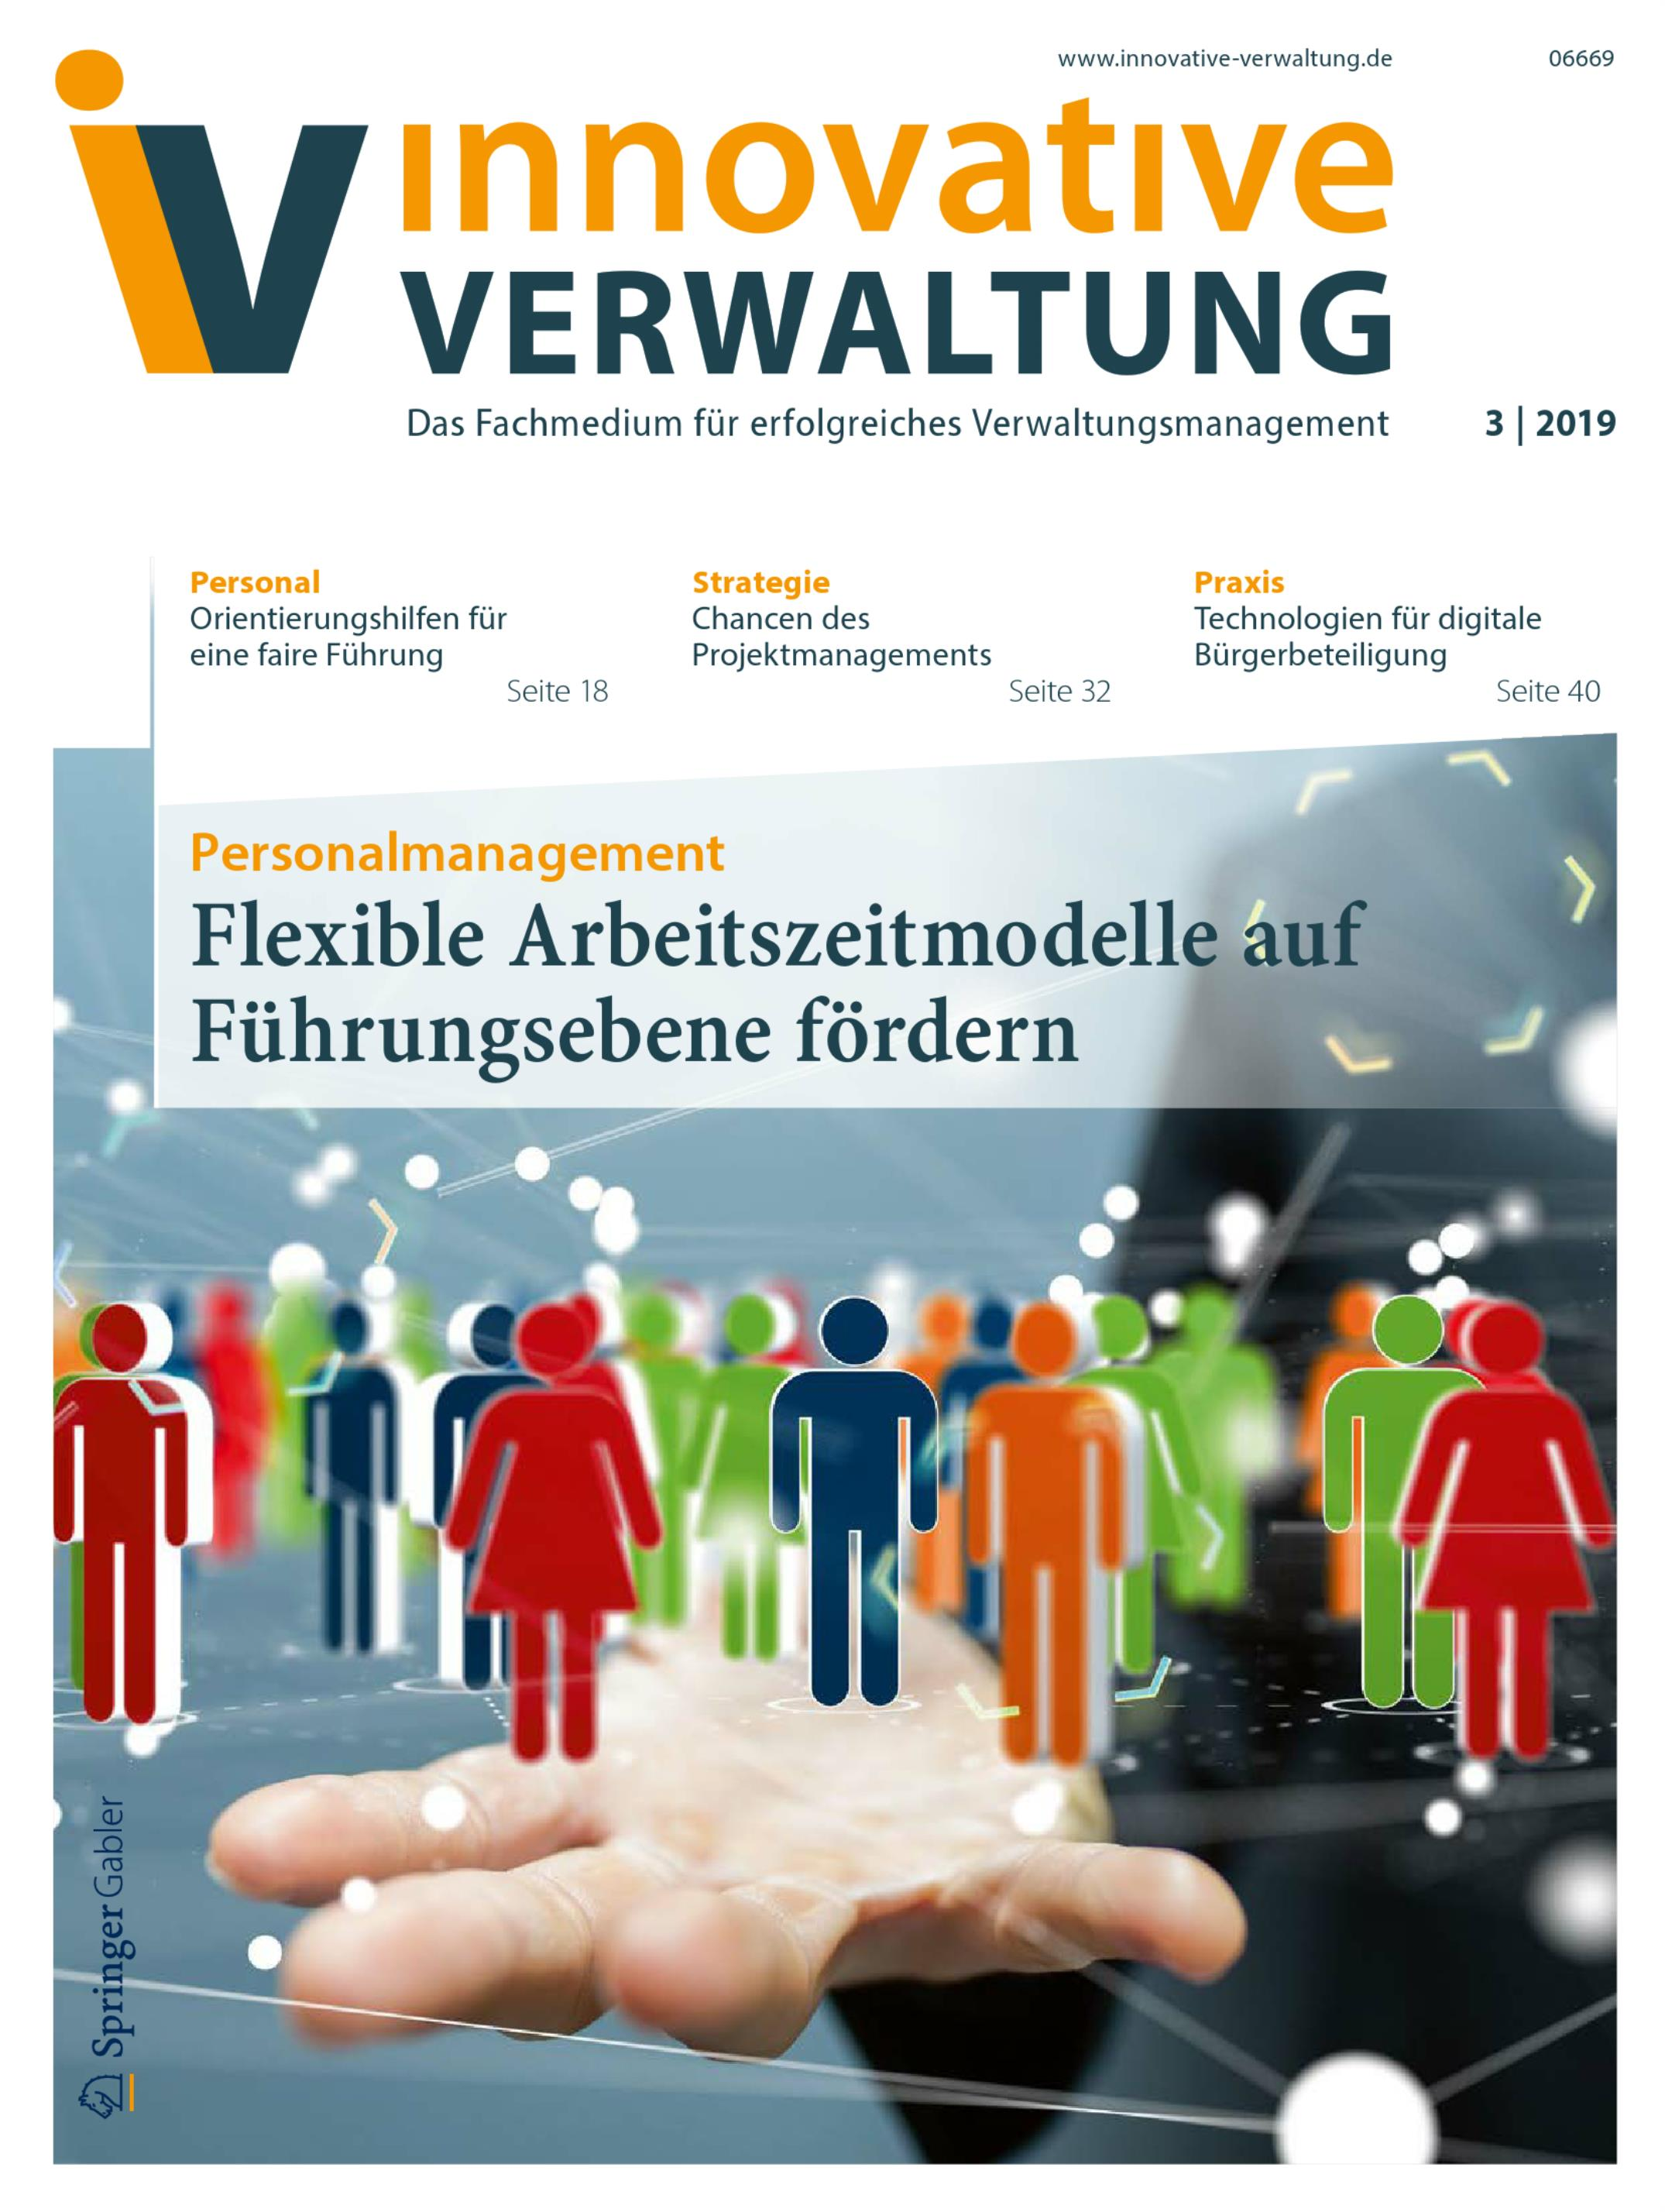 Innovative_Verwaltung_2019_03-Cover.jpg